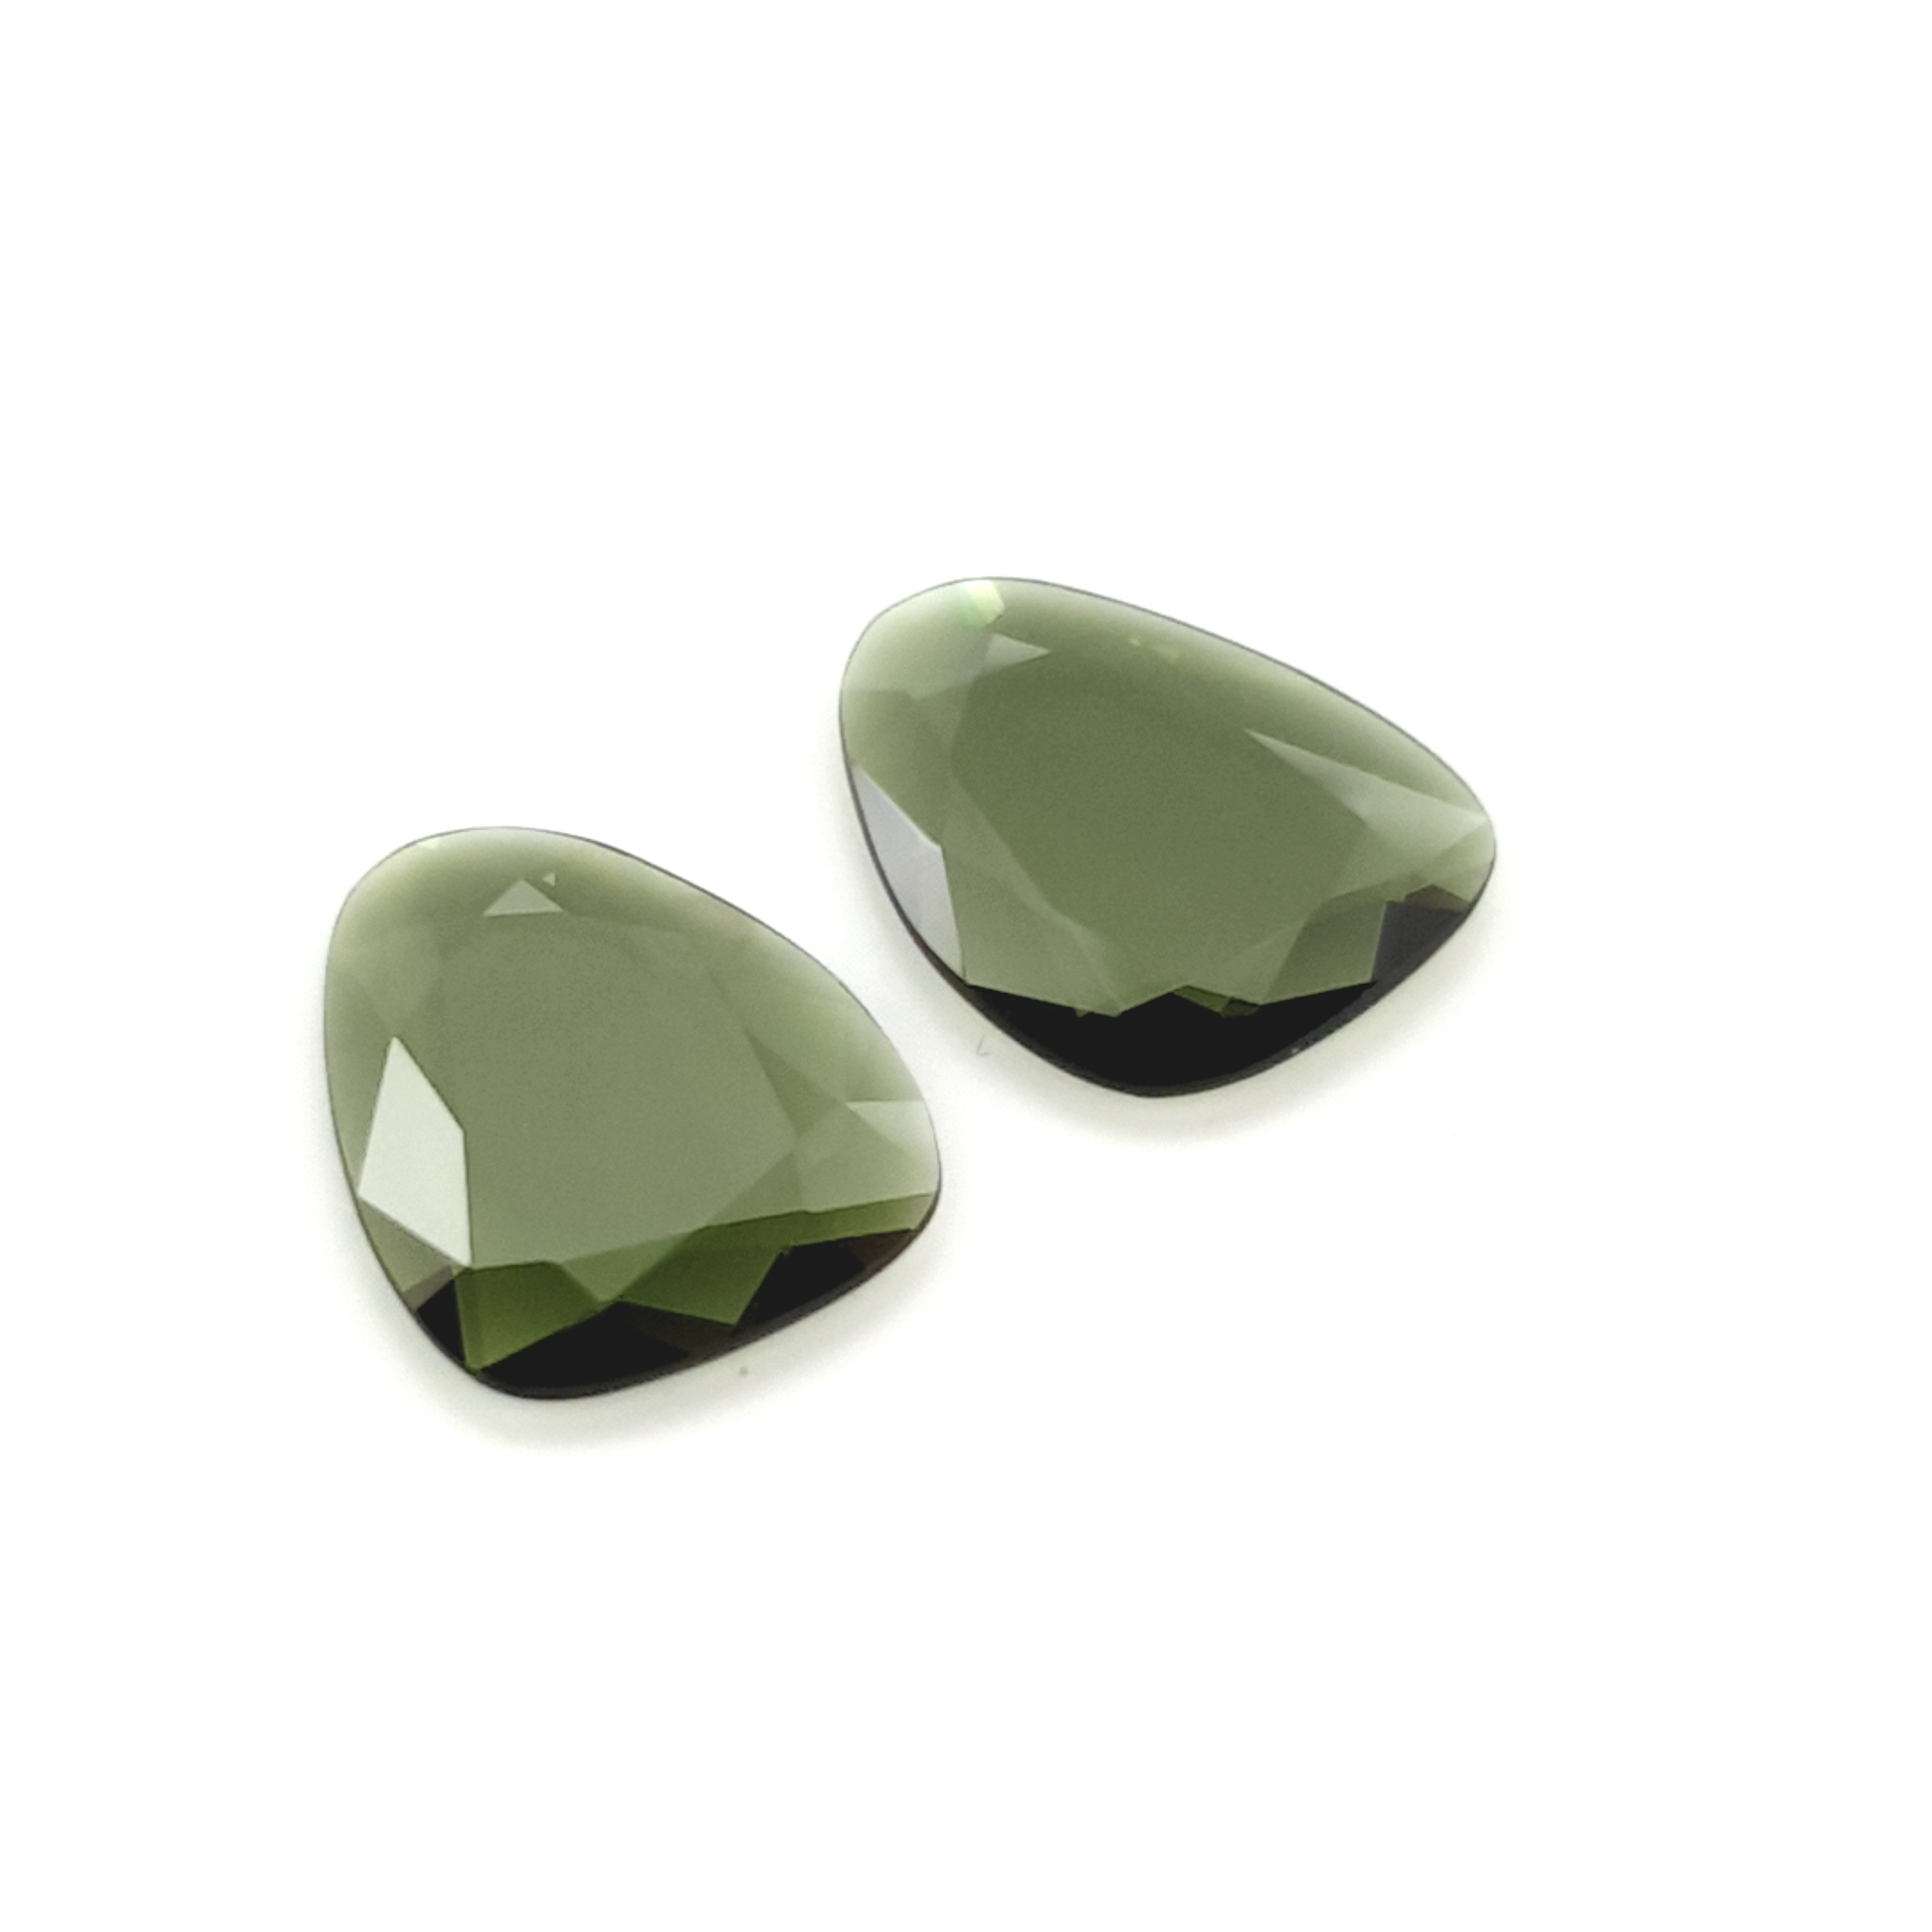 4,84ct.Pair Imperial Green Tourmalin DoubleRoseCut TMJ18C3 ClaudiaHamann__2021-02-11-22-49-25